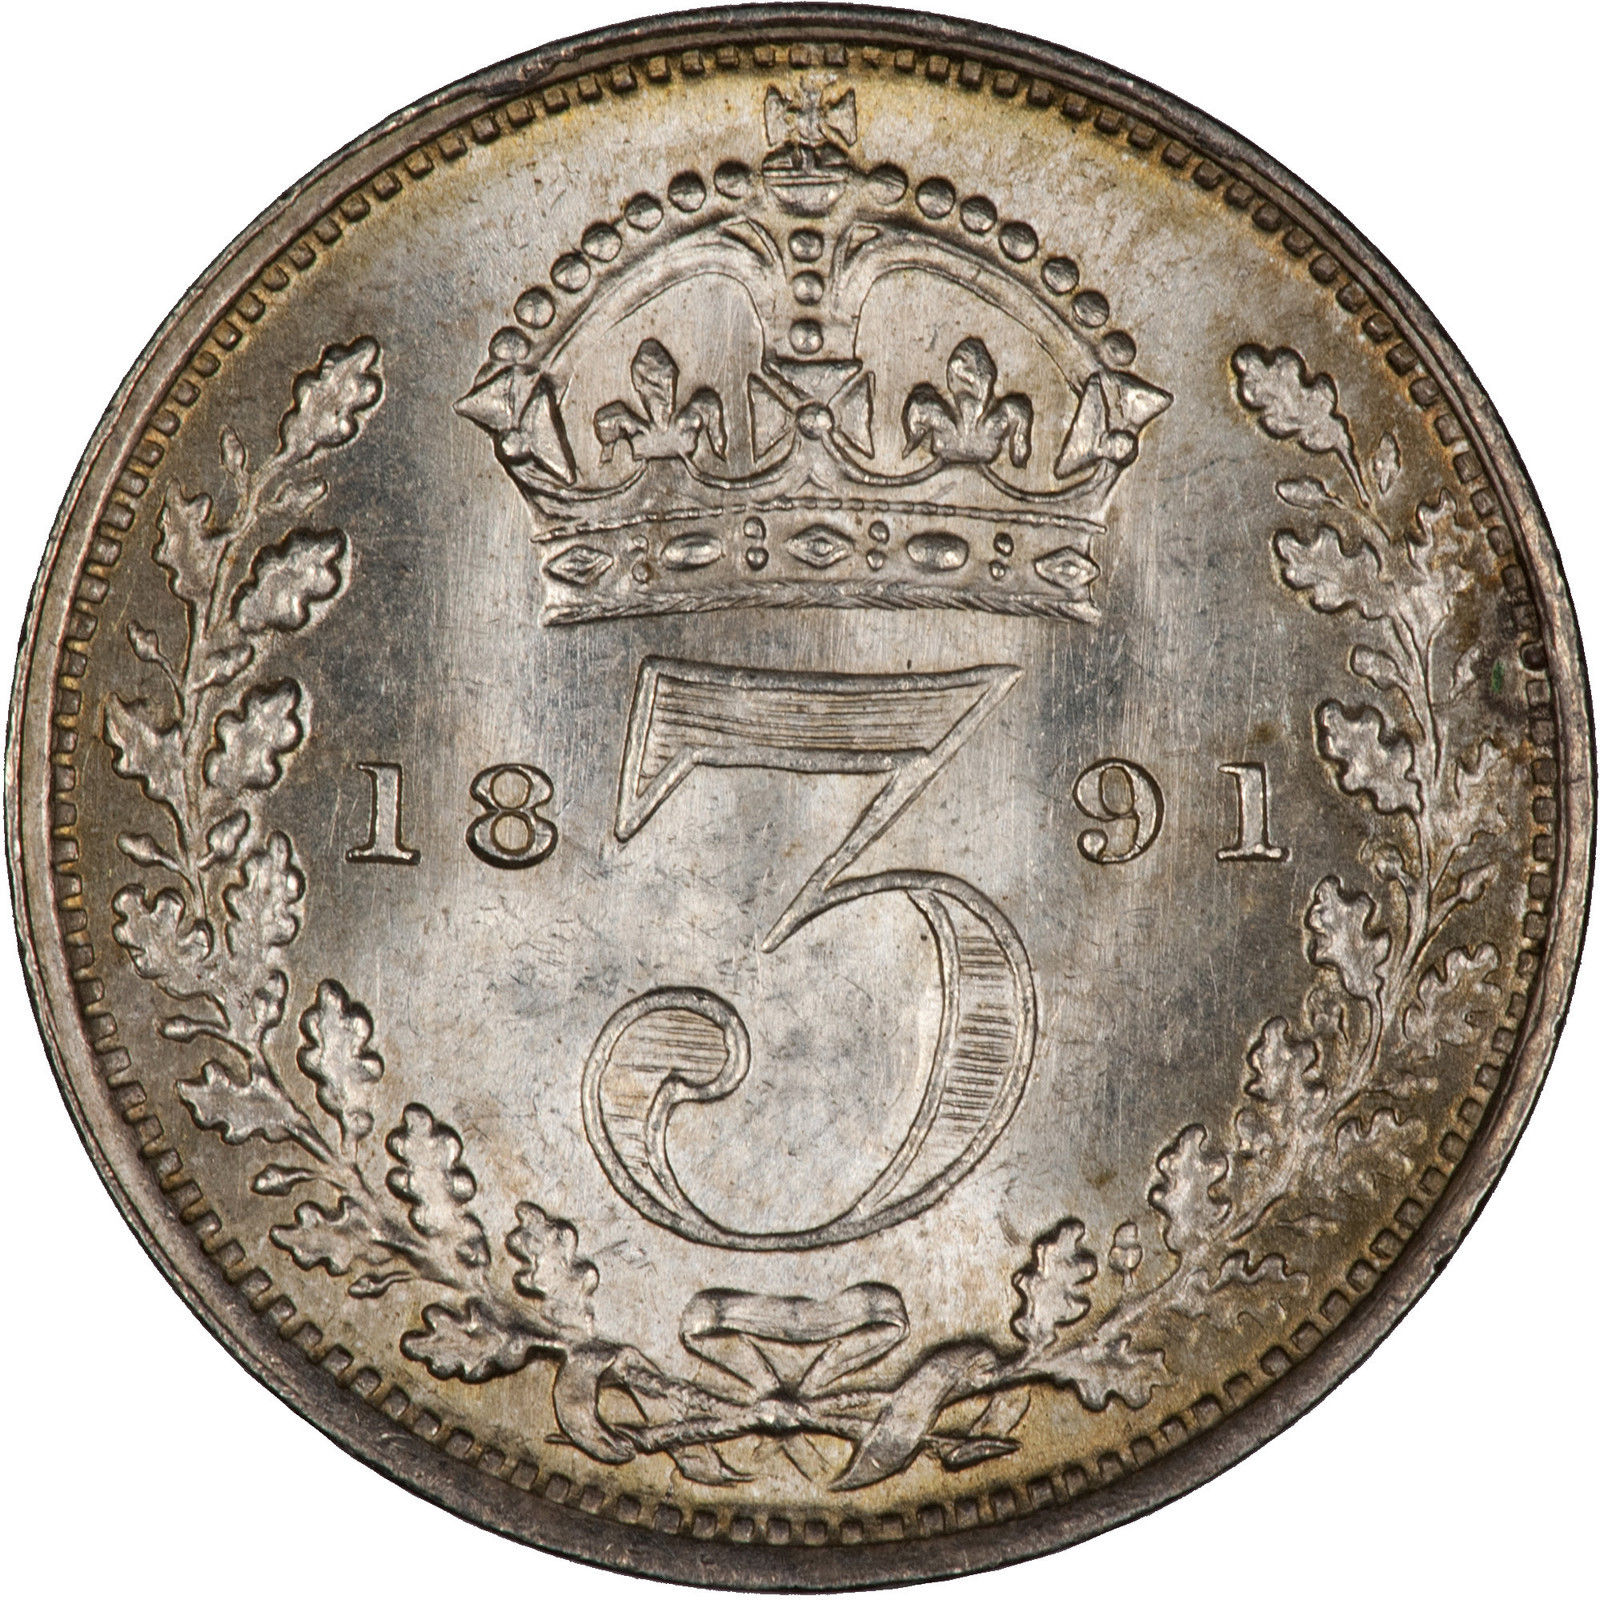 Threepence (Circulating): Photo Great Britain 1891 3 Pence